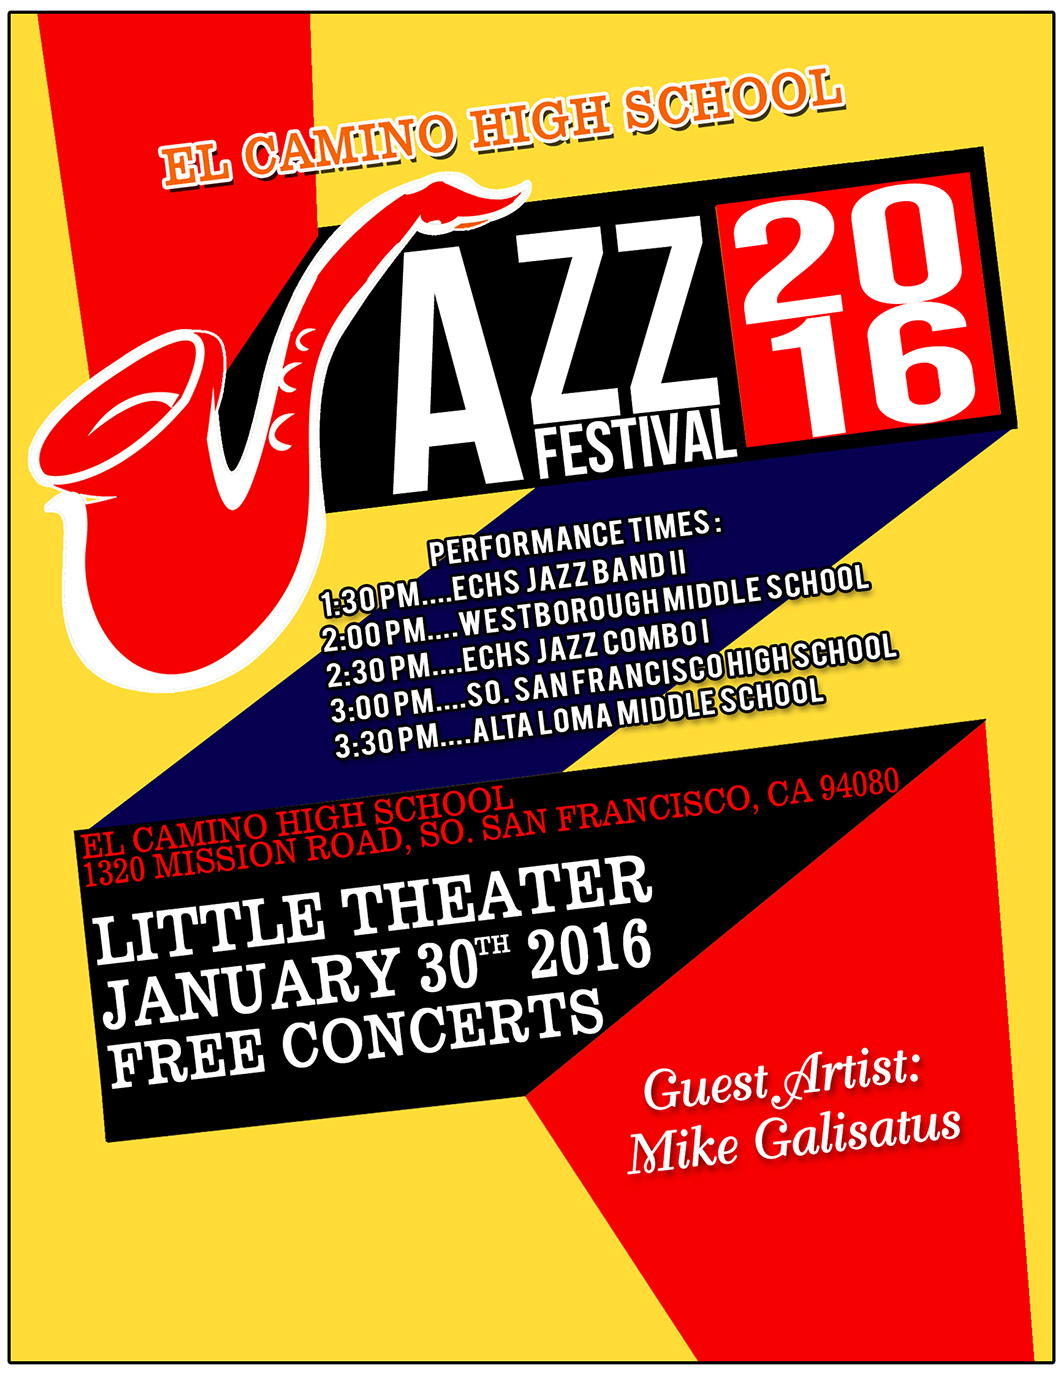 El Camino High School Jazz Department's 3rd Annual Jazz Festival Sat Jan 30th